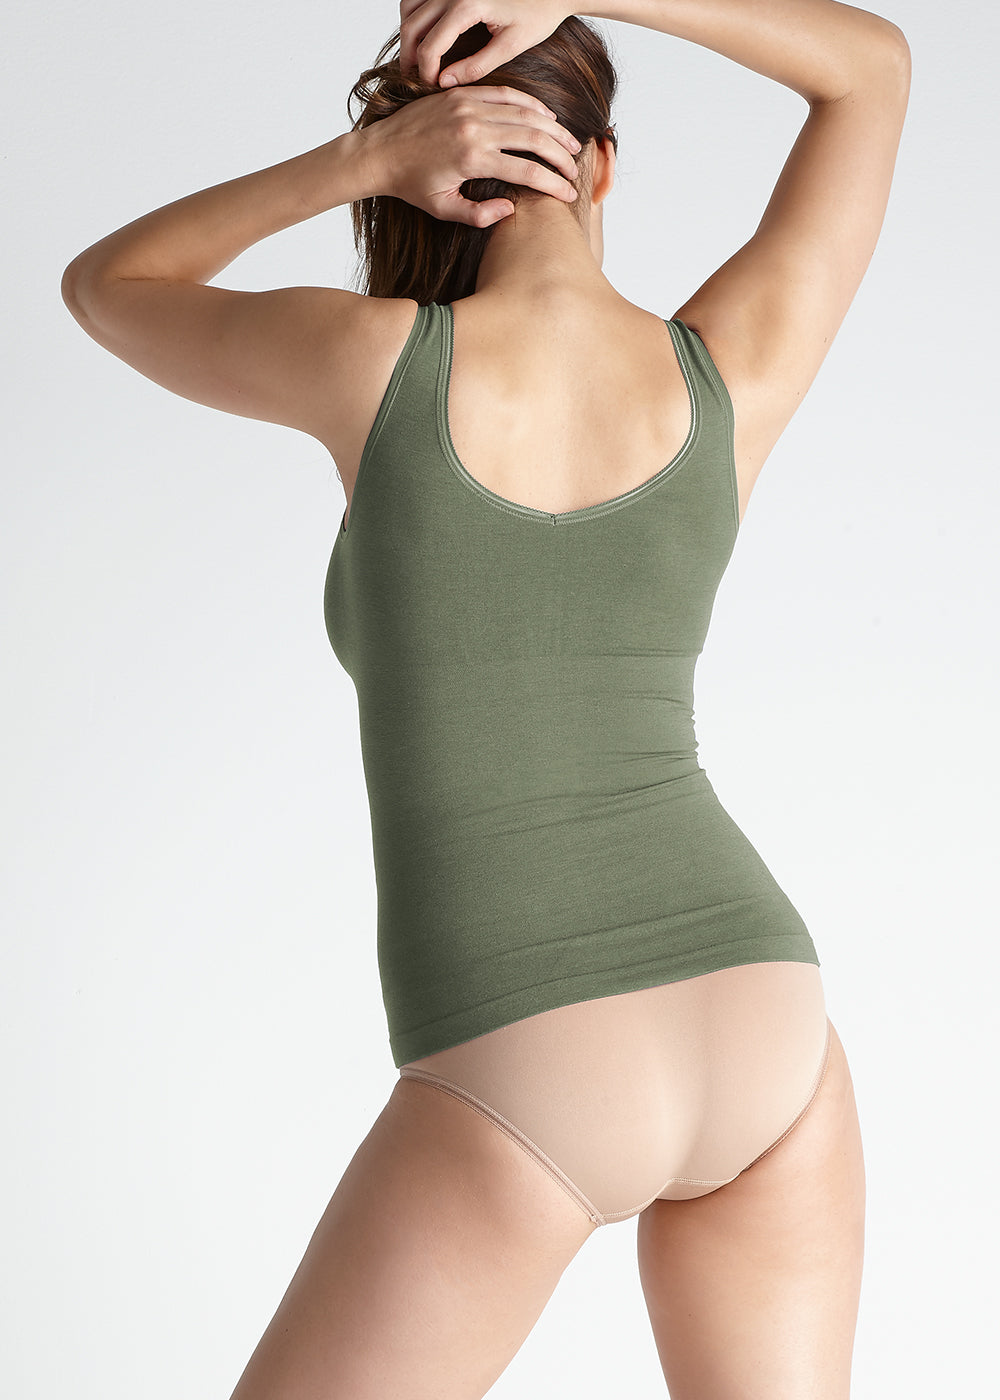 Dusty Olive | 5' 11"